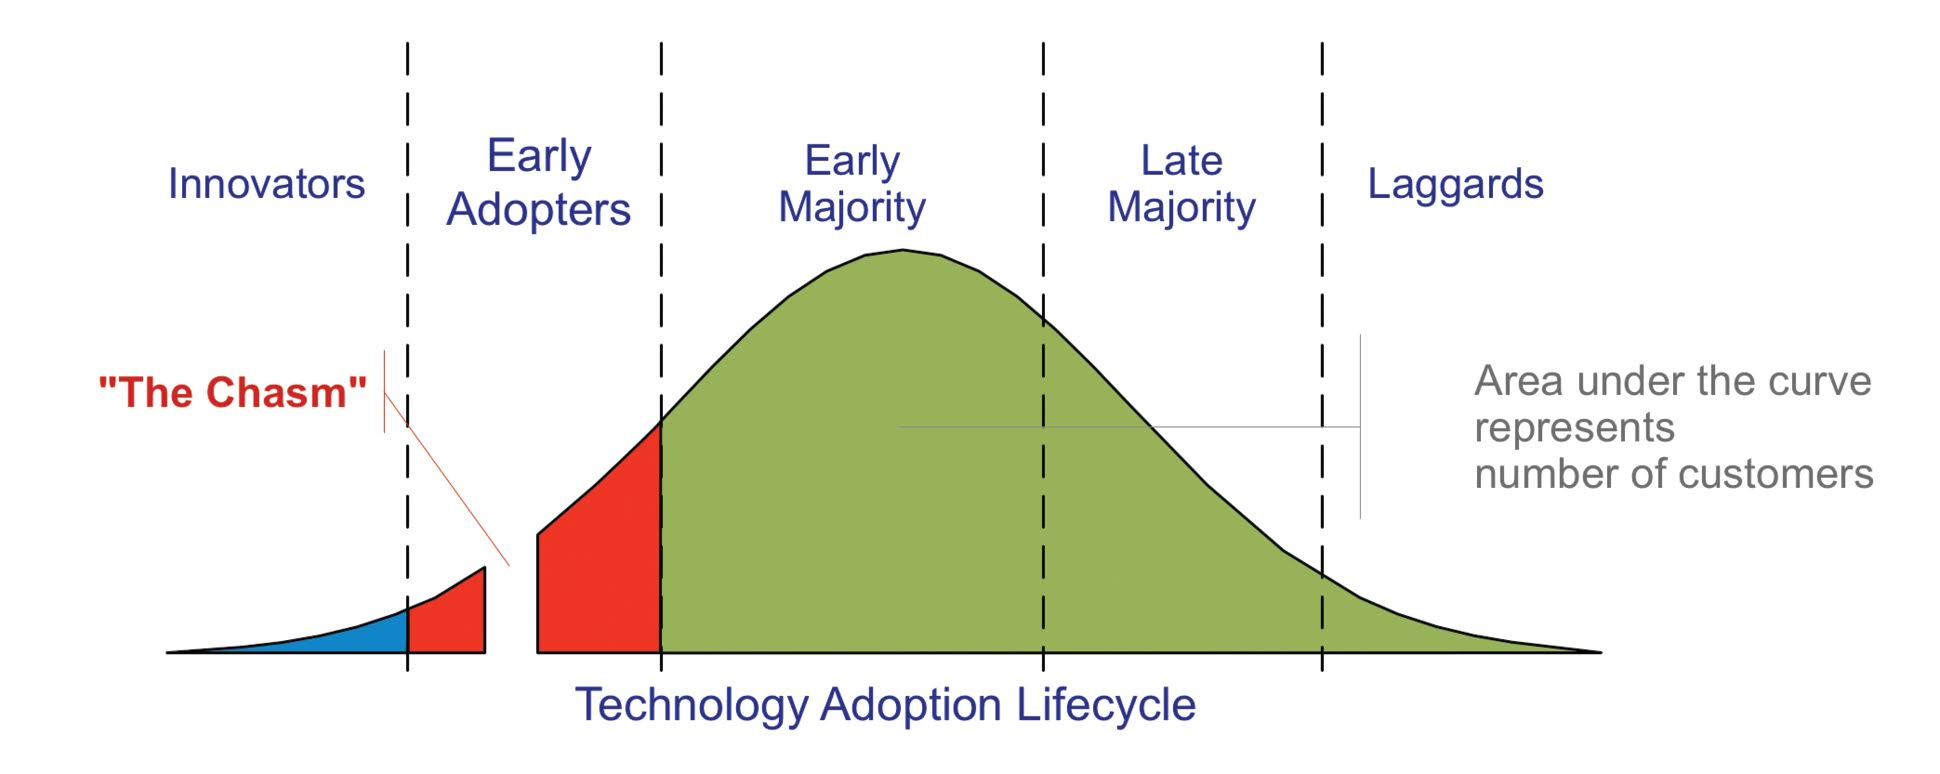 Over time, successful technology migrates from early adopters into mainstream users. Credit: Crossing the Chasm, Geoffrey Moore.